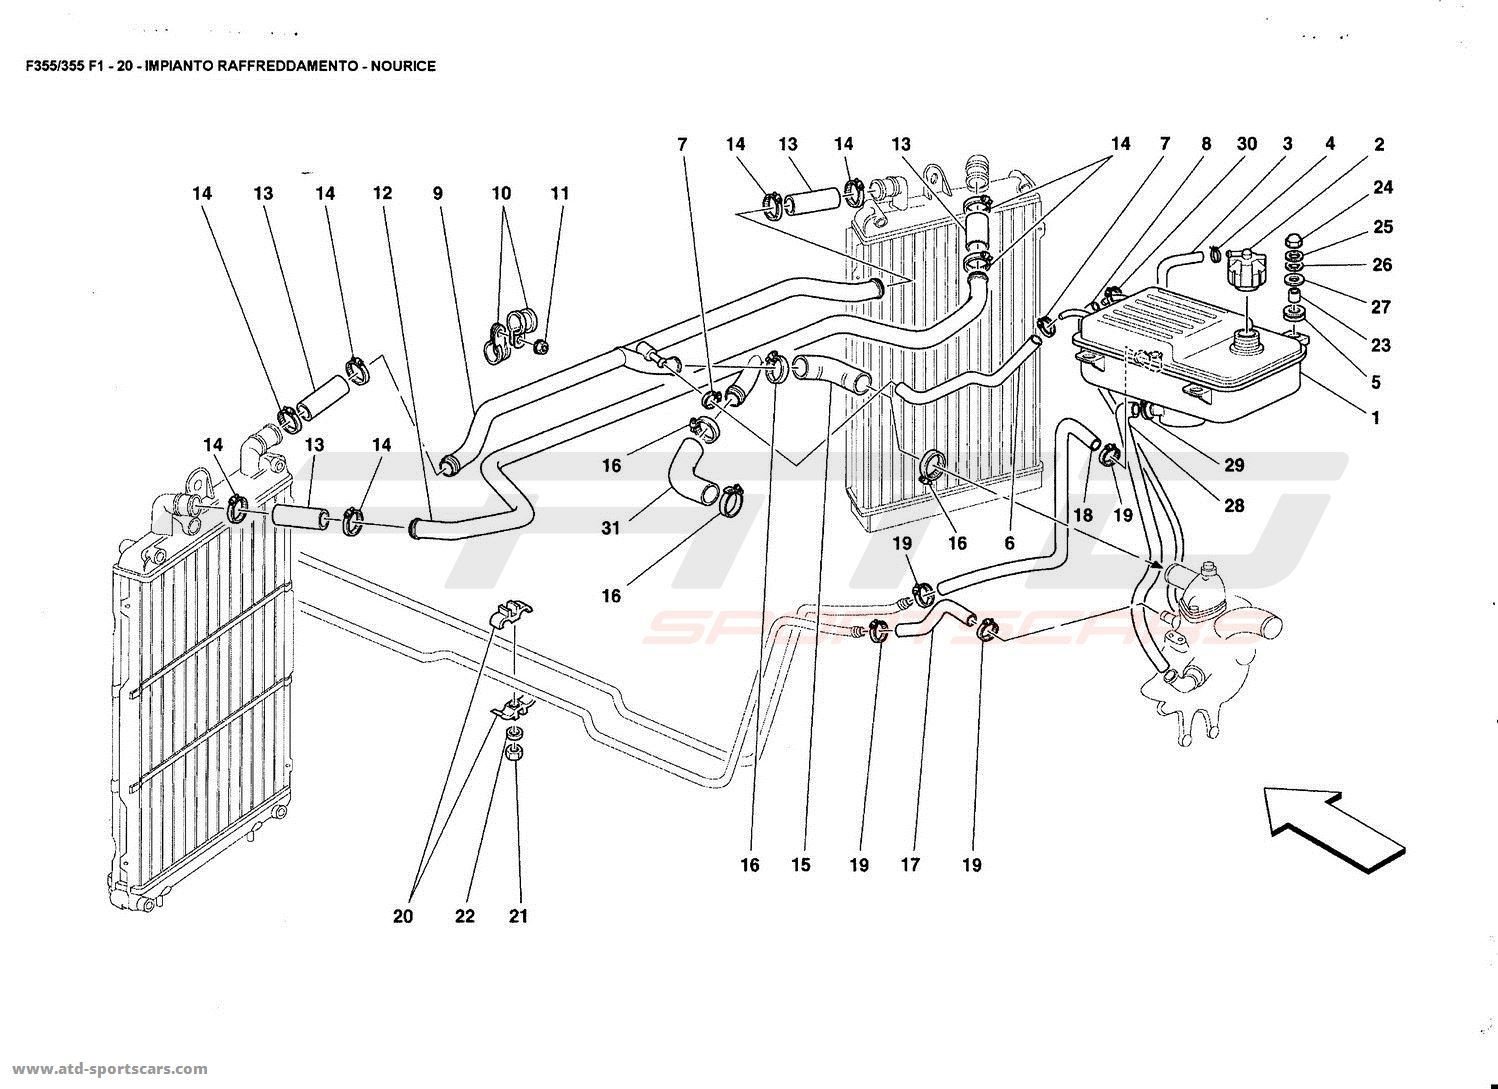 ferrari f355 5 2 et f1 cooling system nourice ferrari f355 5 2 f1 cooling air conditioning parts at atd ferrari 355 wiring diagram at panicattacktreatment.co